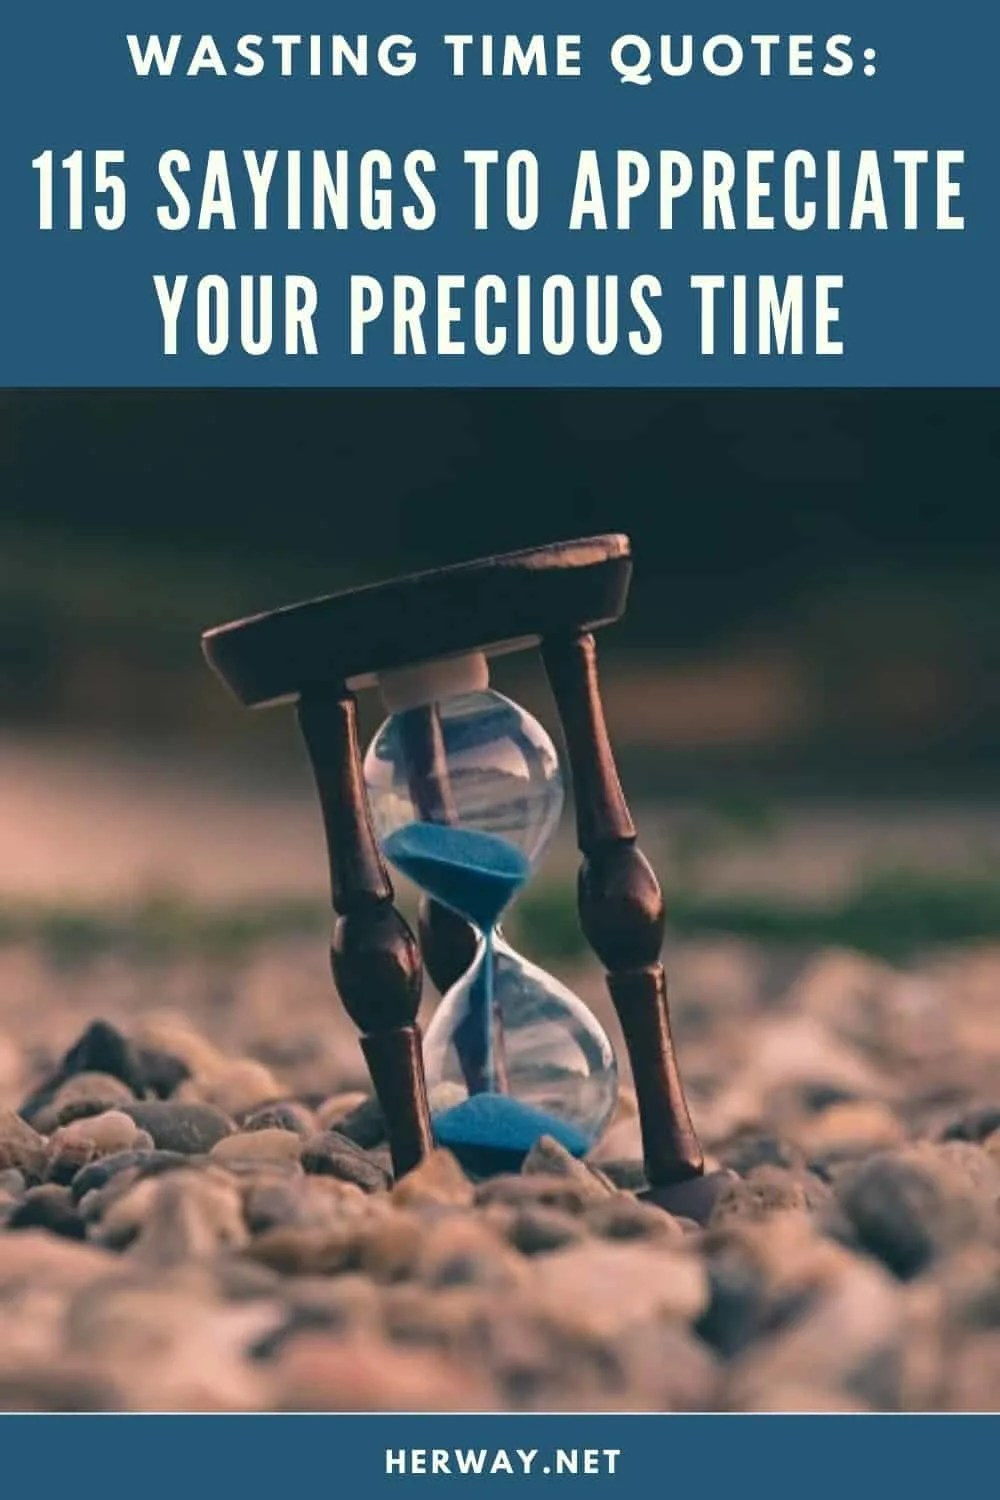 Quote On Wasting Time : quote, wasting, Wasting, Quotes:, Sayings, Appreciate, Precious